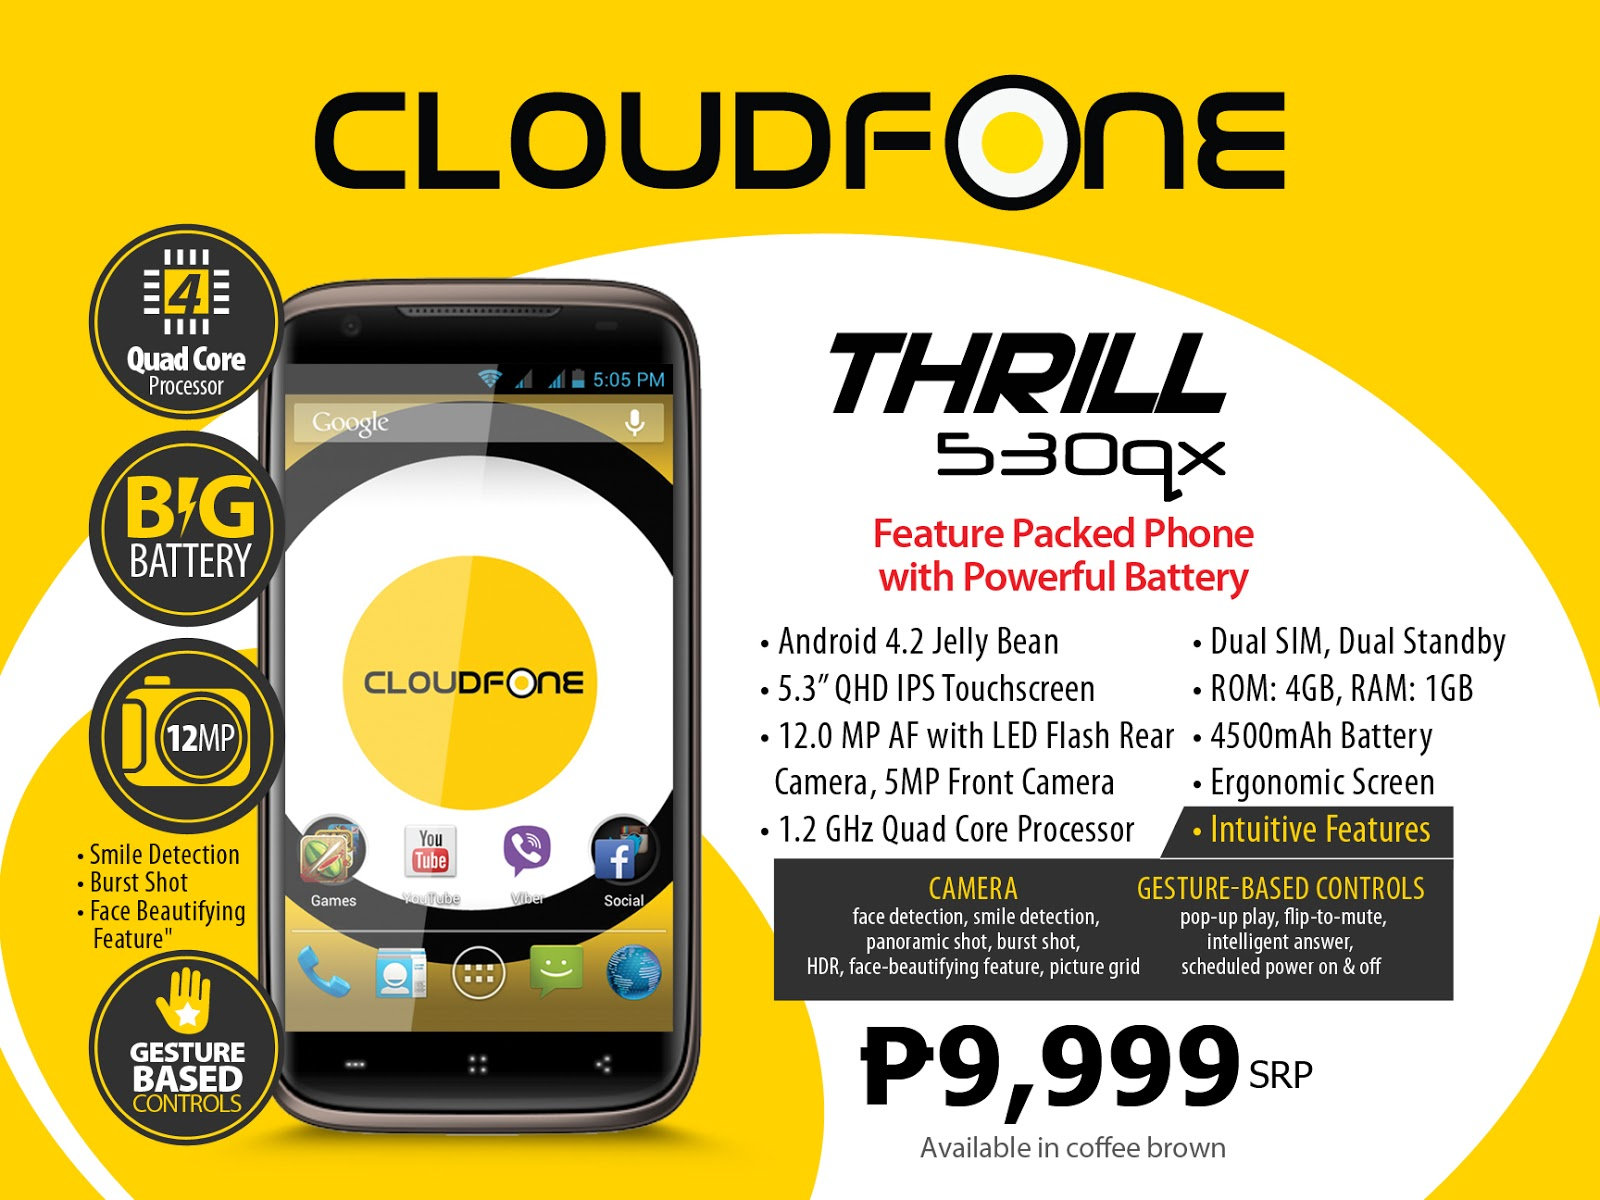 Cloudfone Thrill 530qx Announced, Features 5.3-inch Display, Quad-Core Processor, and 4500mAh Battery